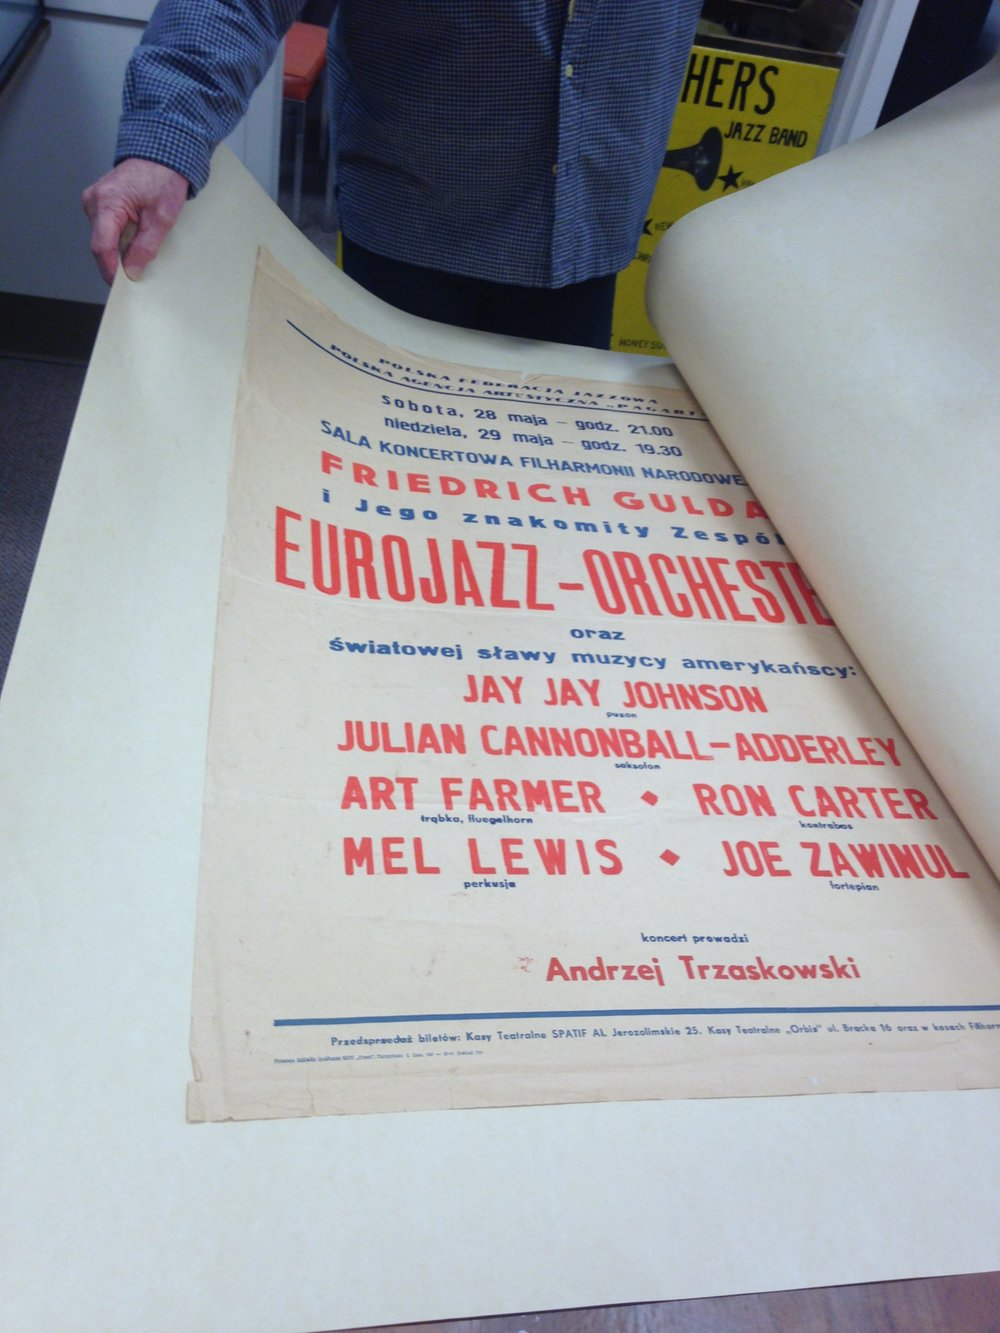 new orleans jazz archives eurojazz orchestra julian cannonball adderley ron carter  polish jazz poster